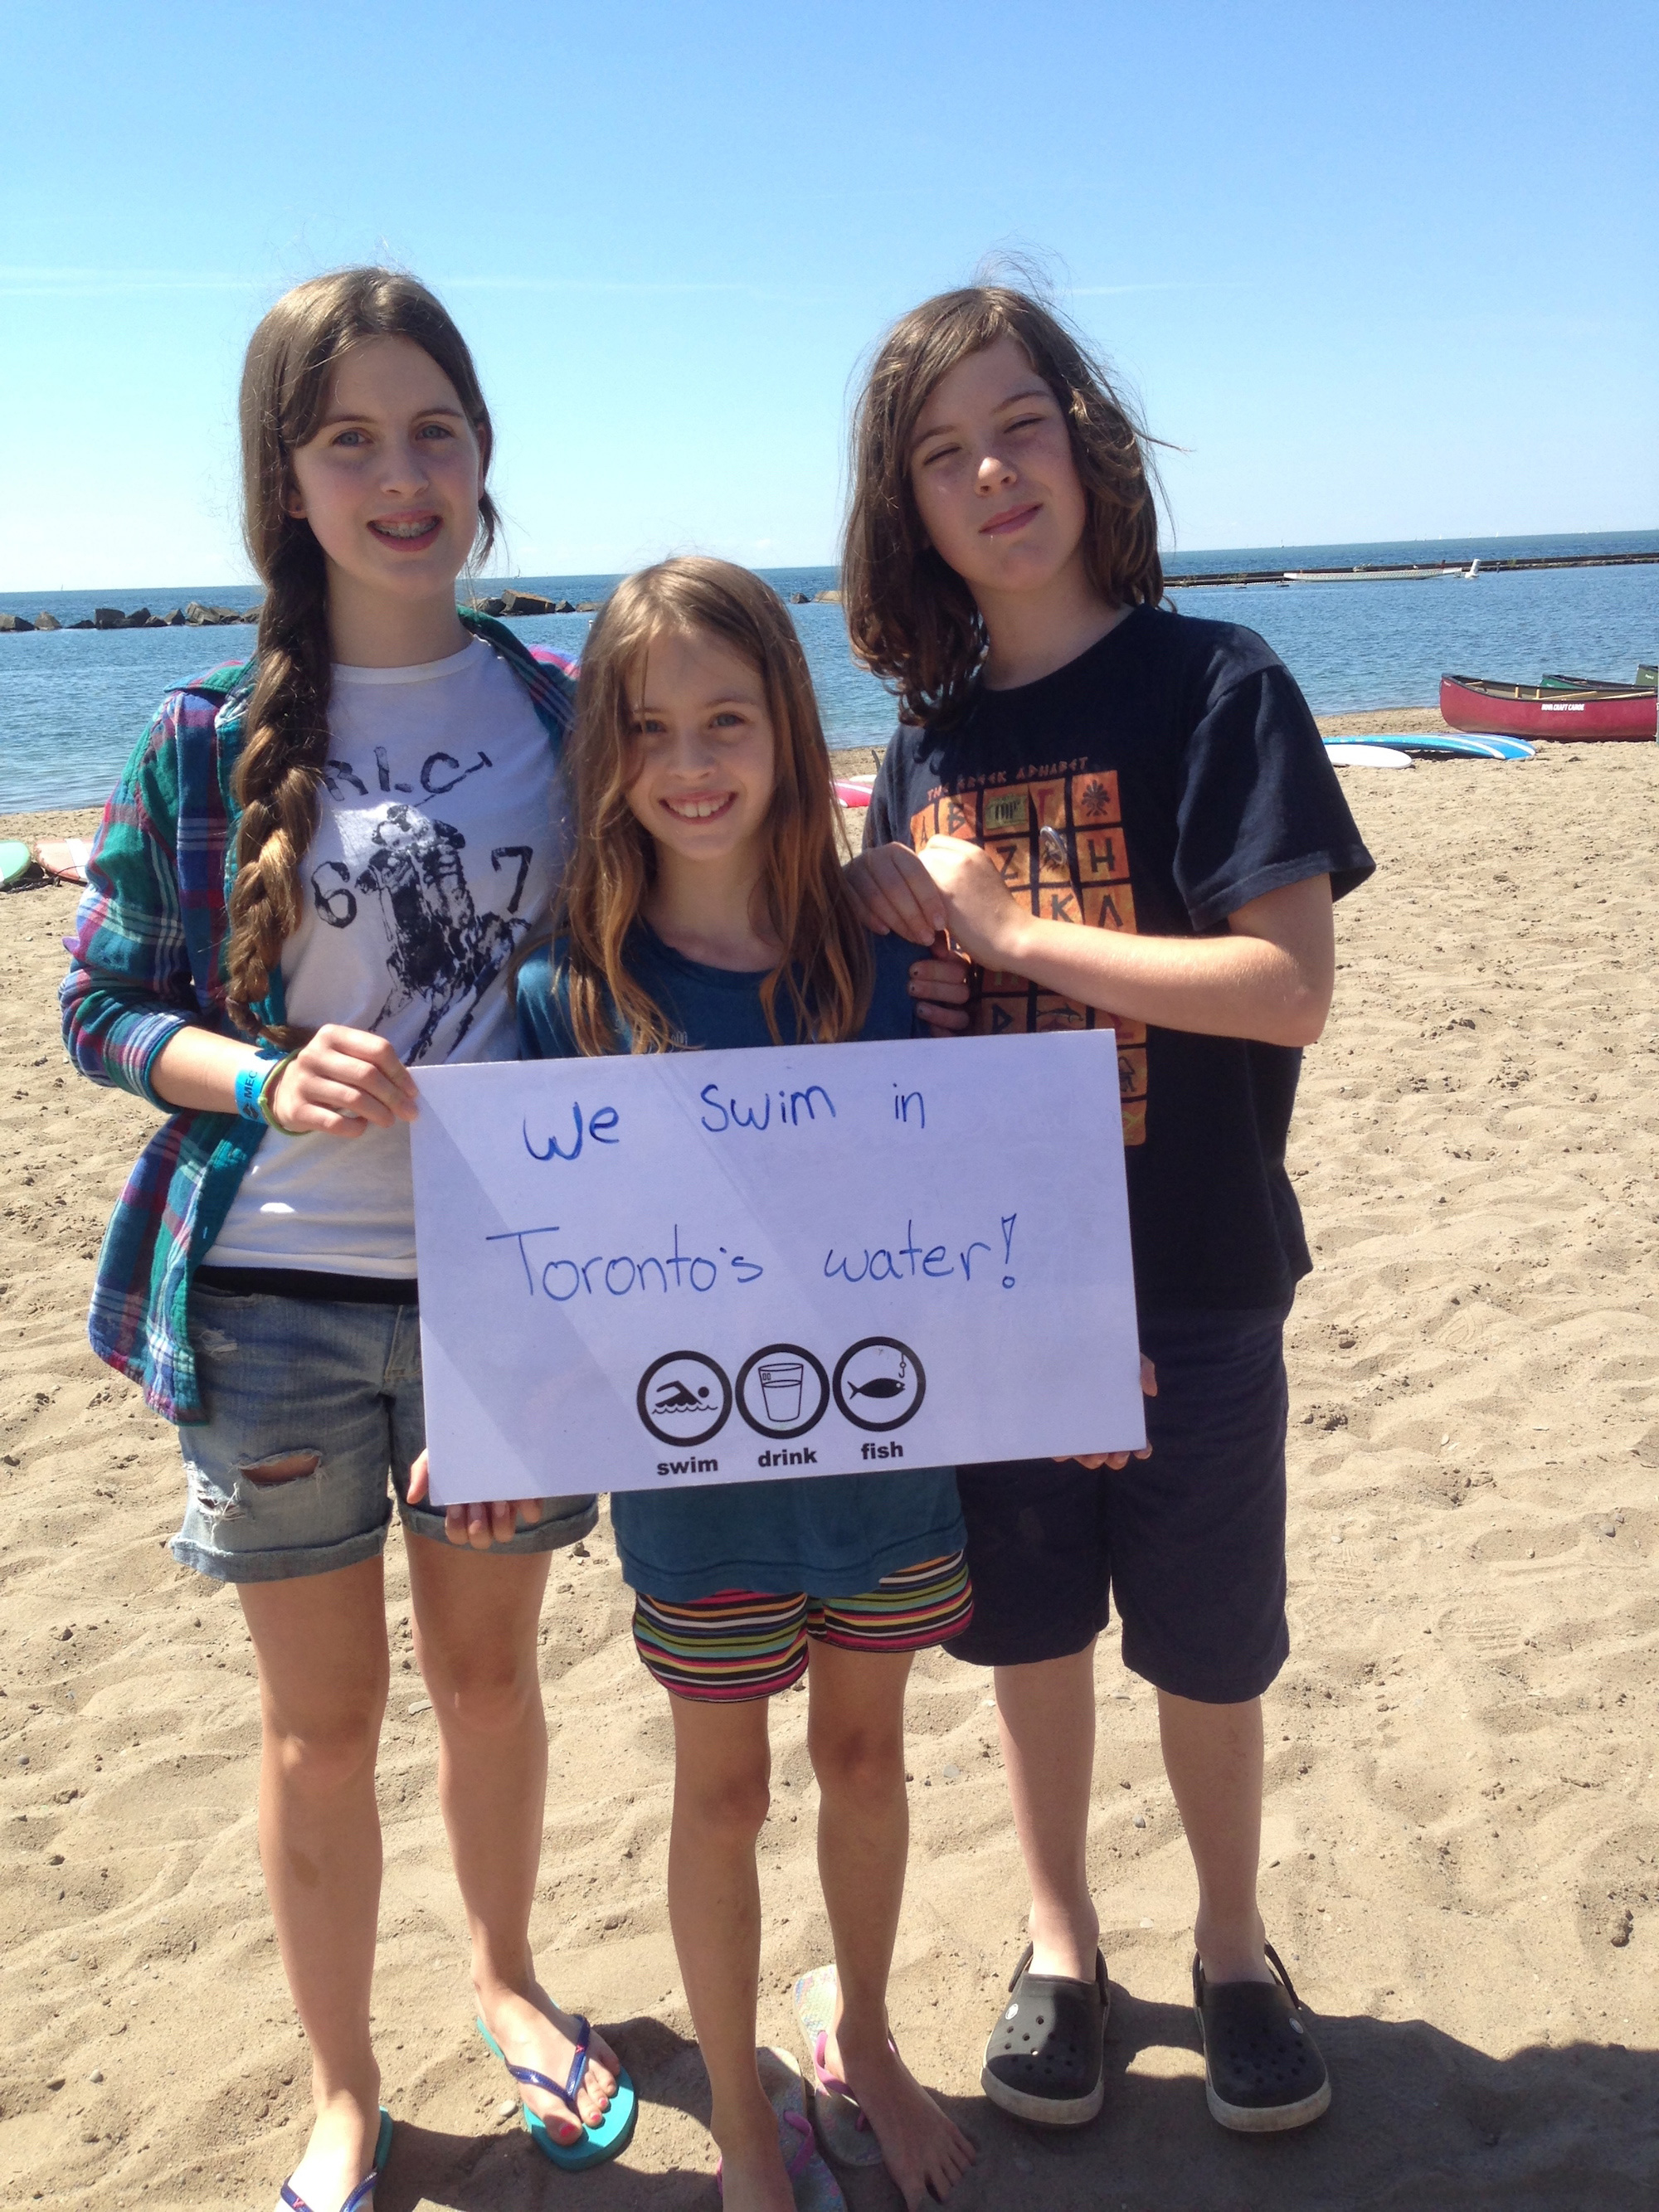 Waterkeeper's new Indiegogo campaign,  Swimmable Lake Ontario  aims to help ensure Torontonians are swimming in what is considered swimmable water. (Photo via Lake Ontario Waterkeeper)